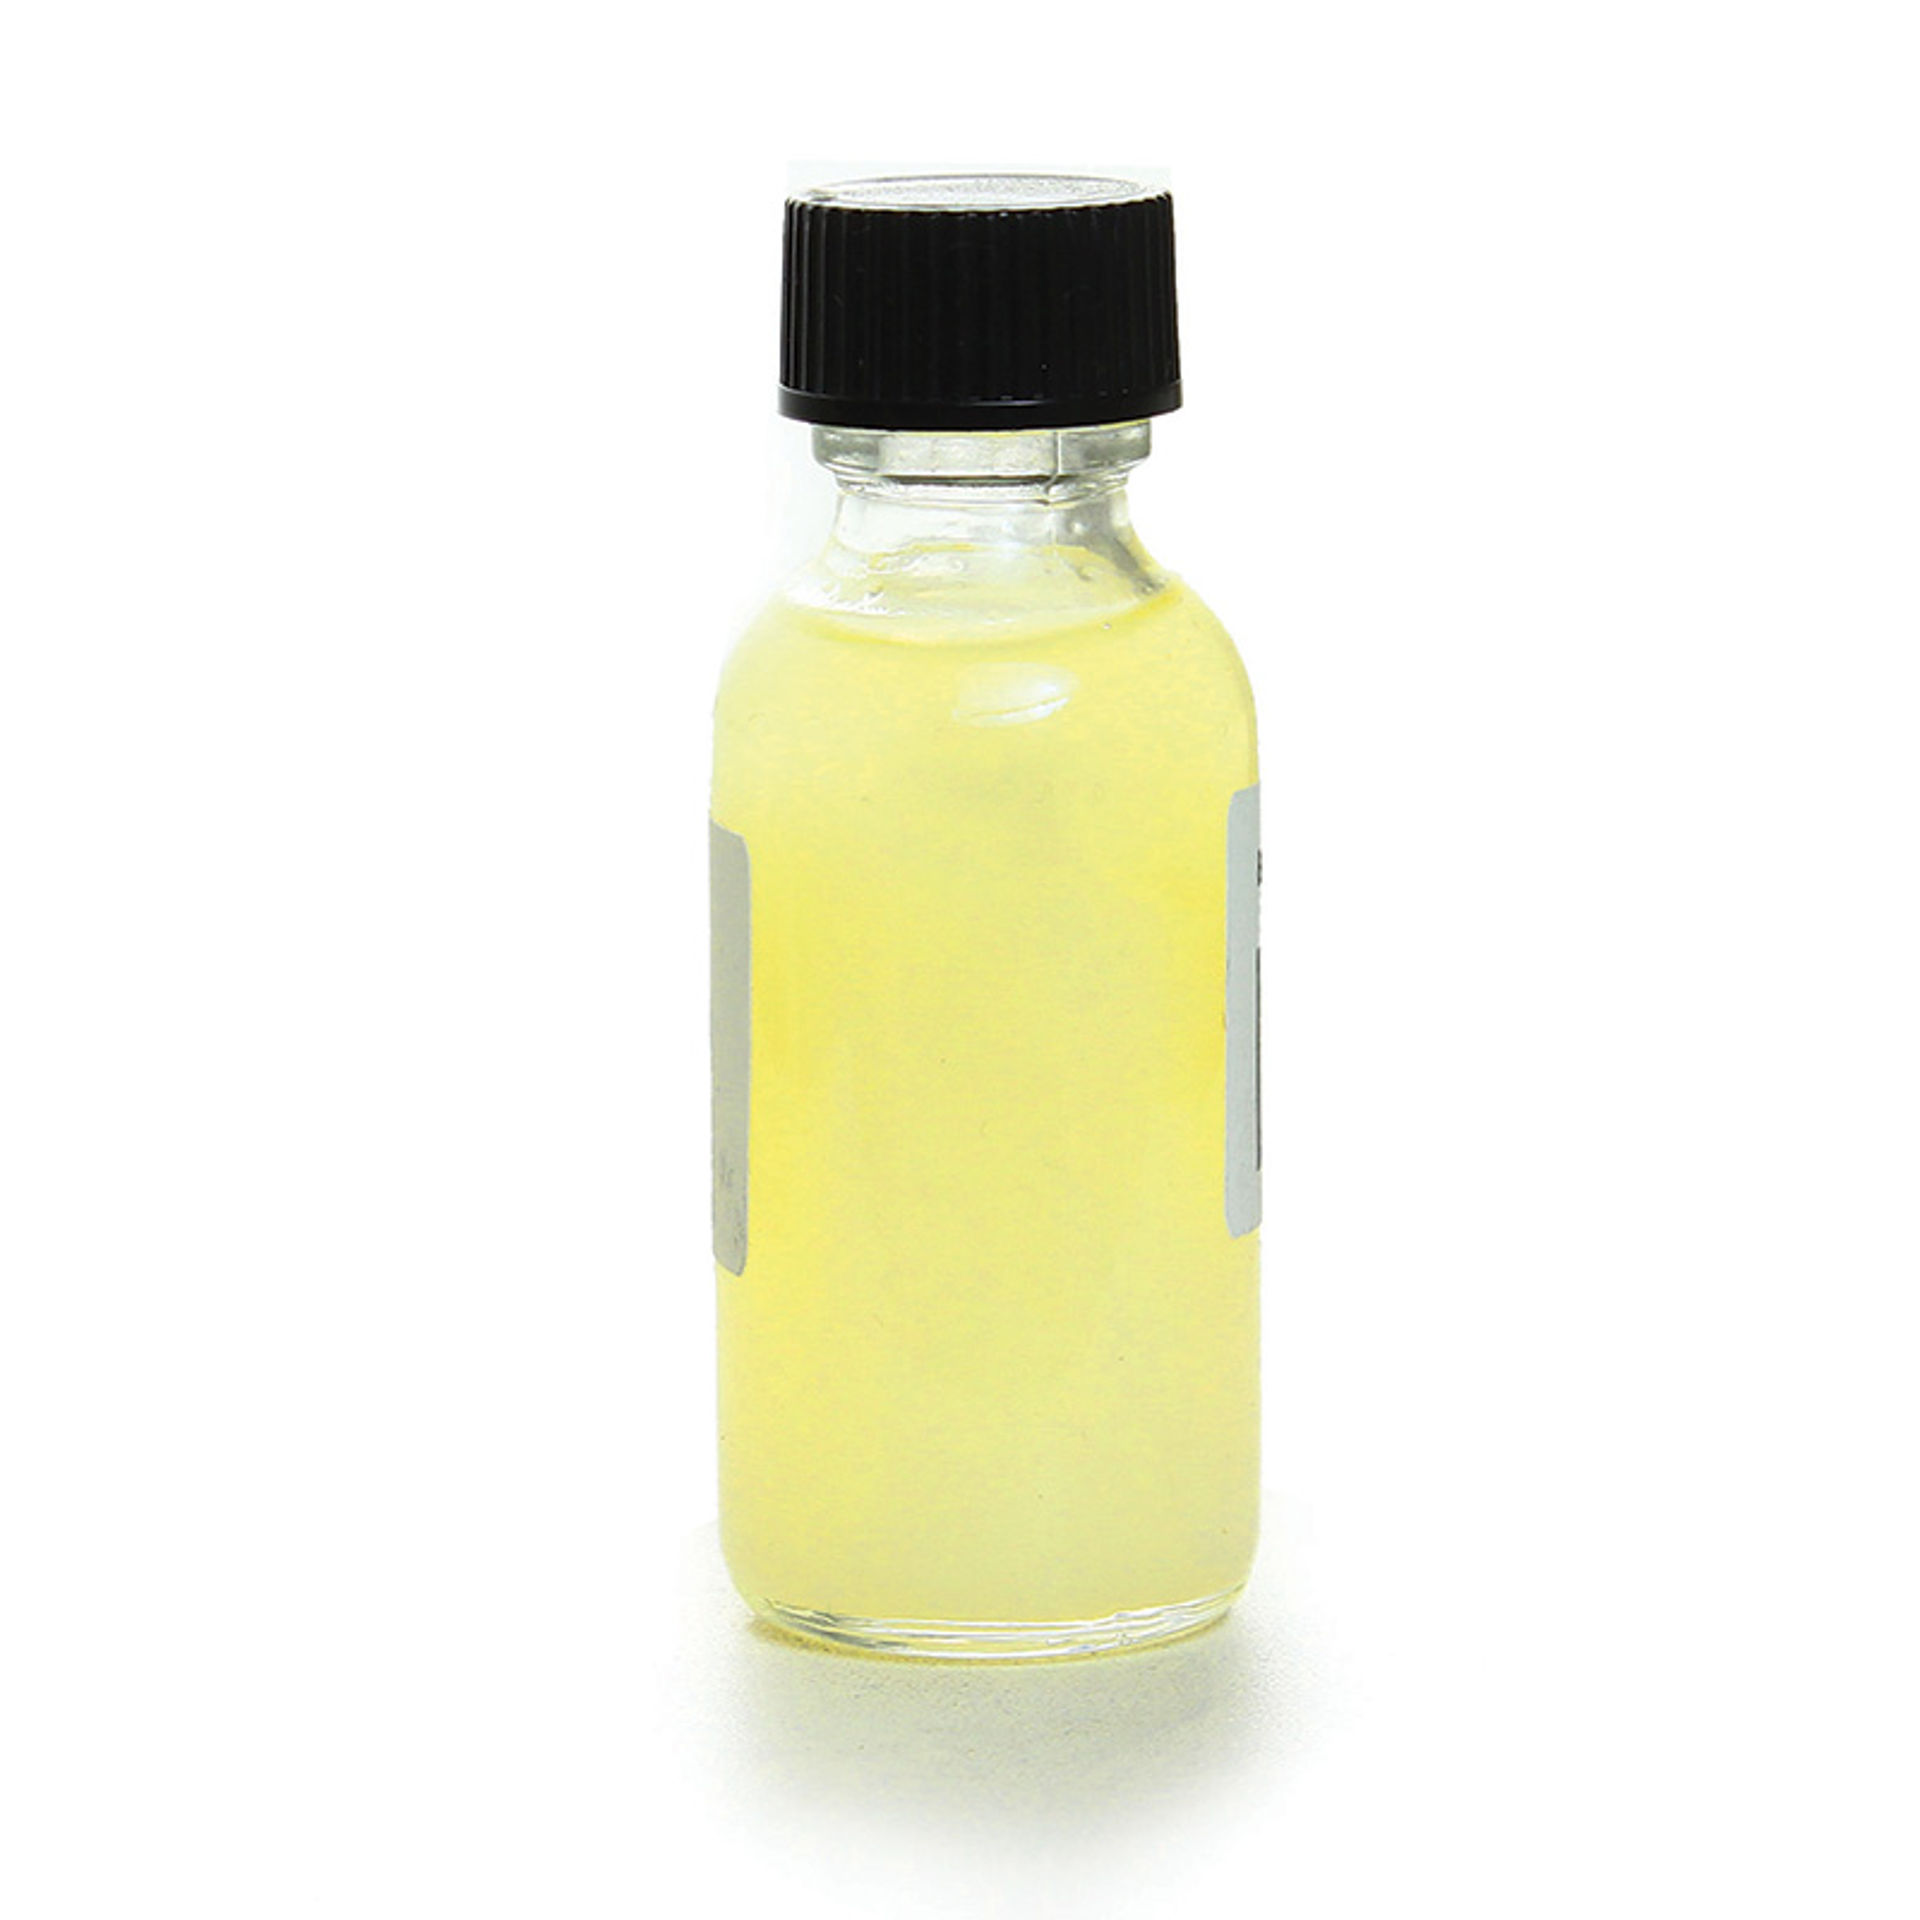 Picture of Organic Virgin Baobab Oil - 1 oz.